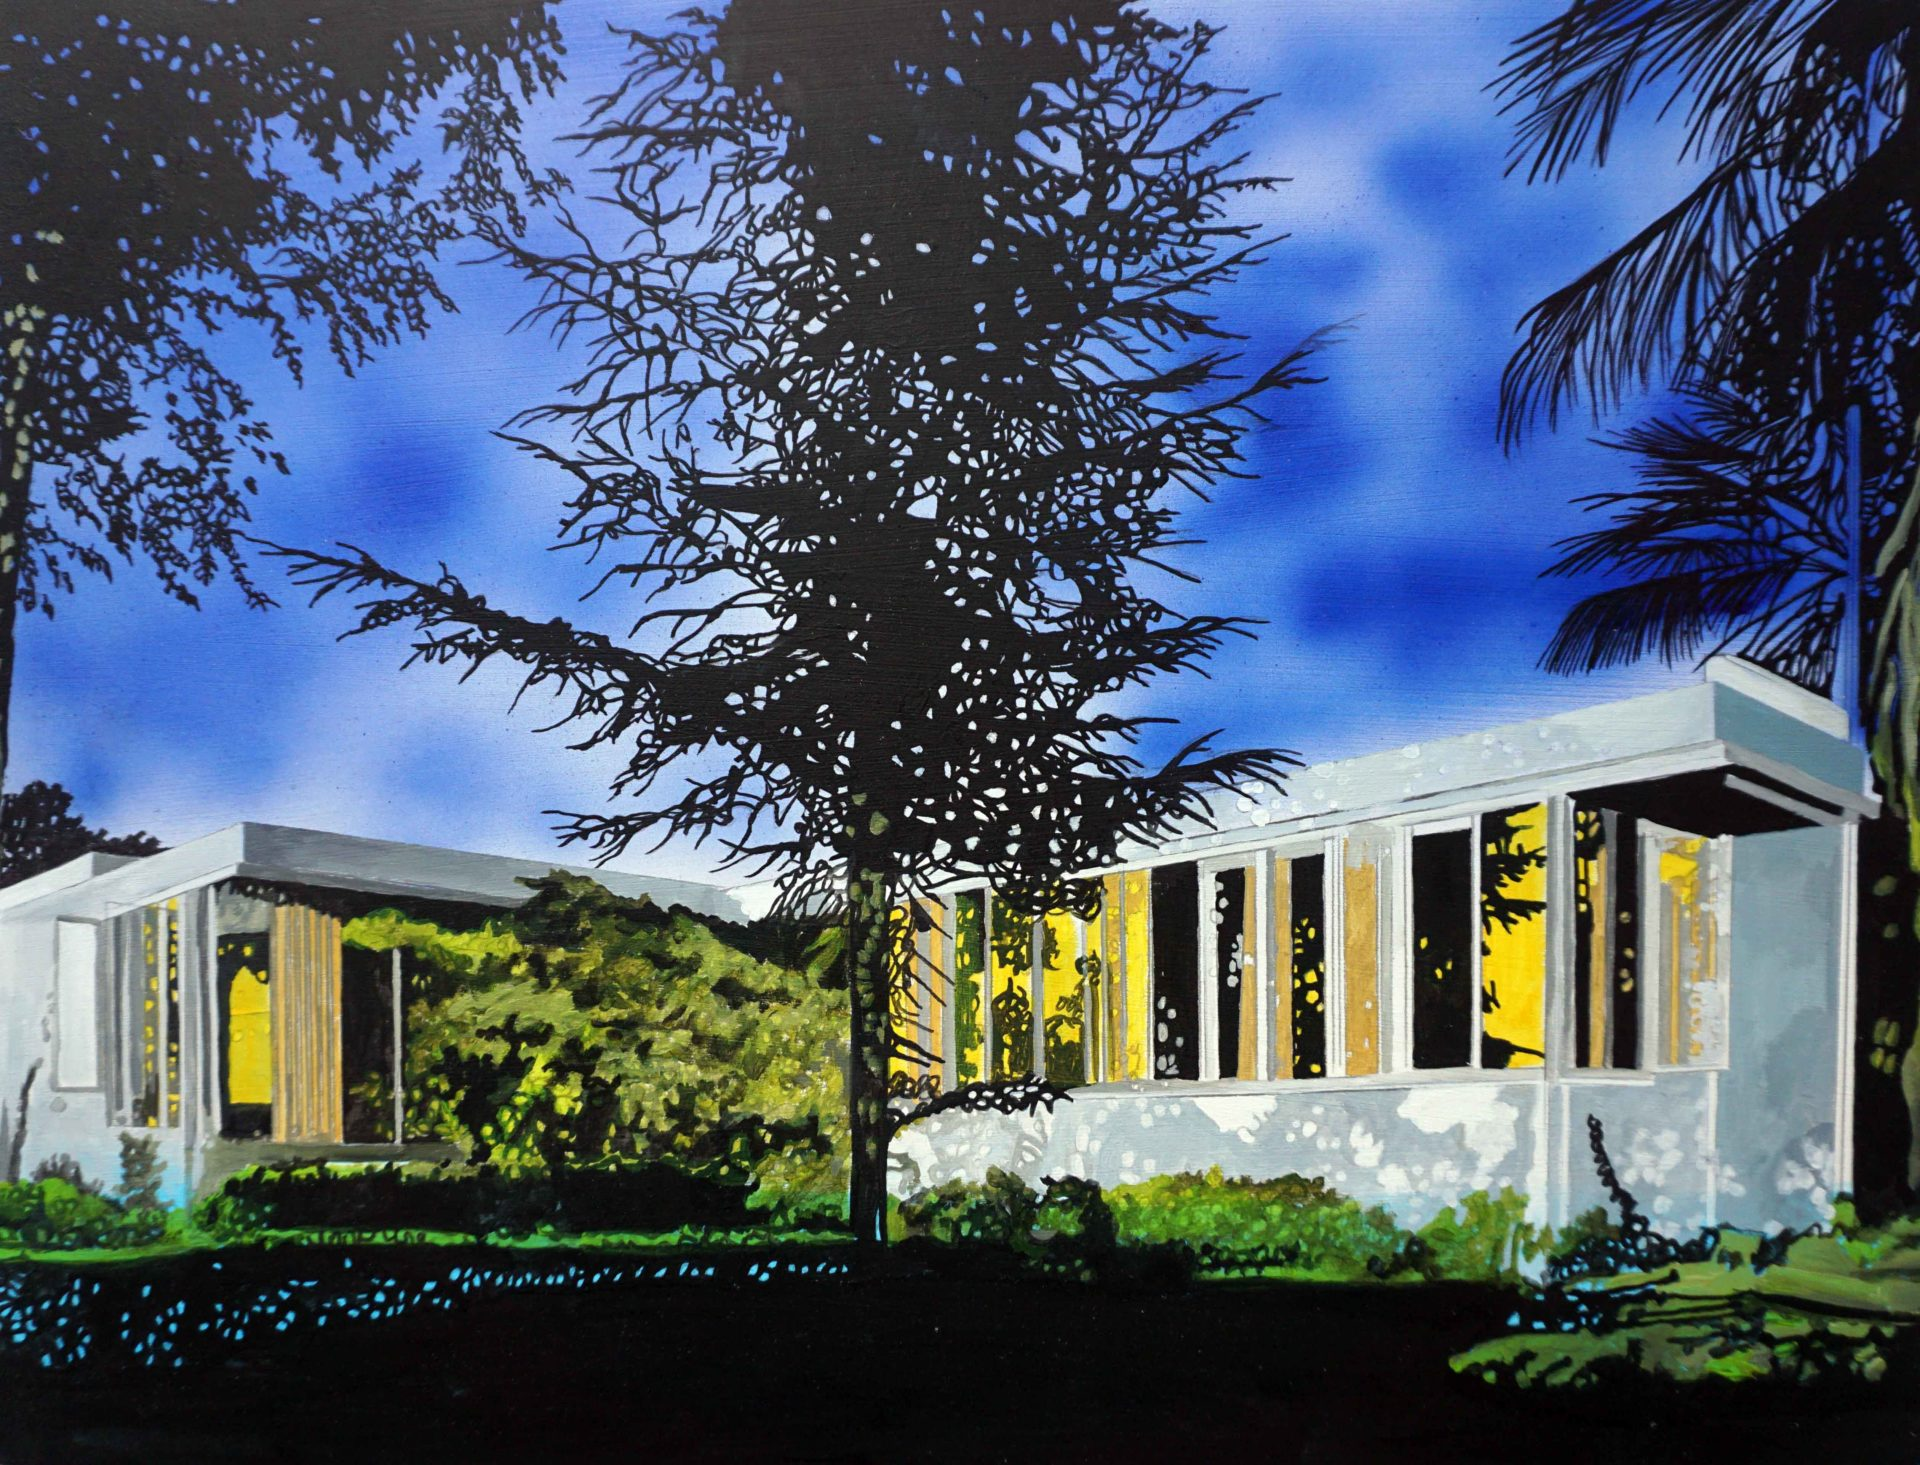 Neutra Richter House 2016 Oil on panel 11.75 x 15.75 in.